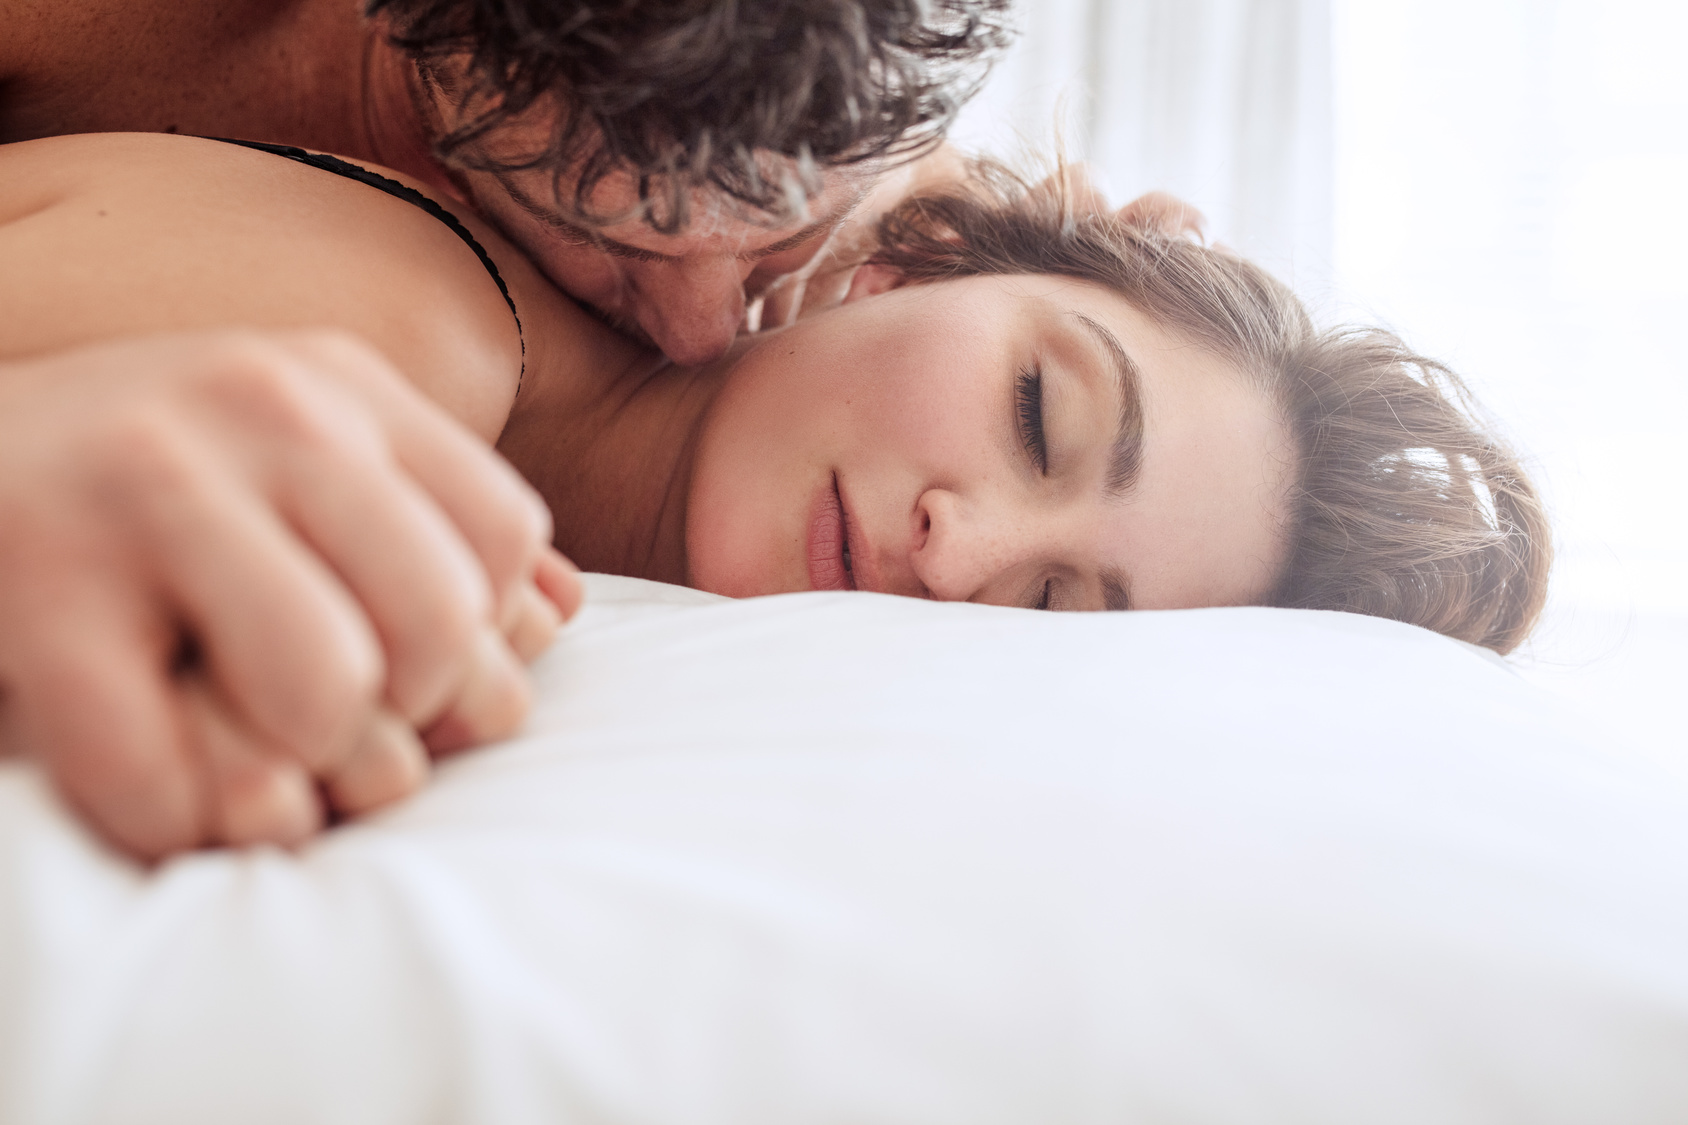 Romantic young couple making love in bed